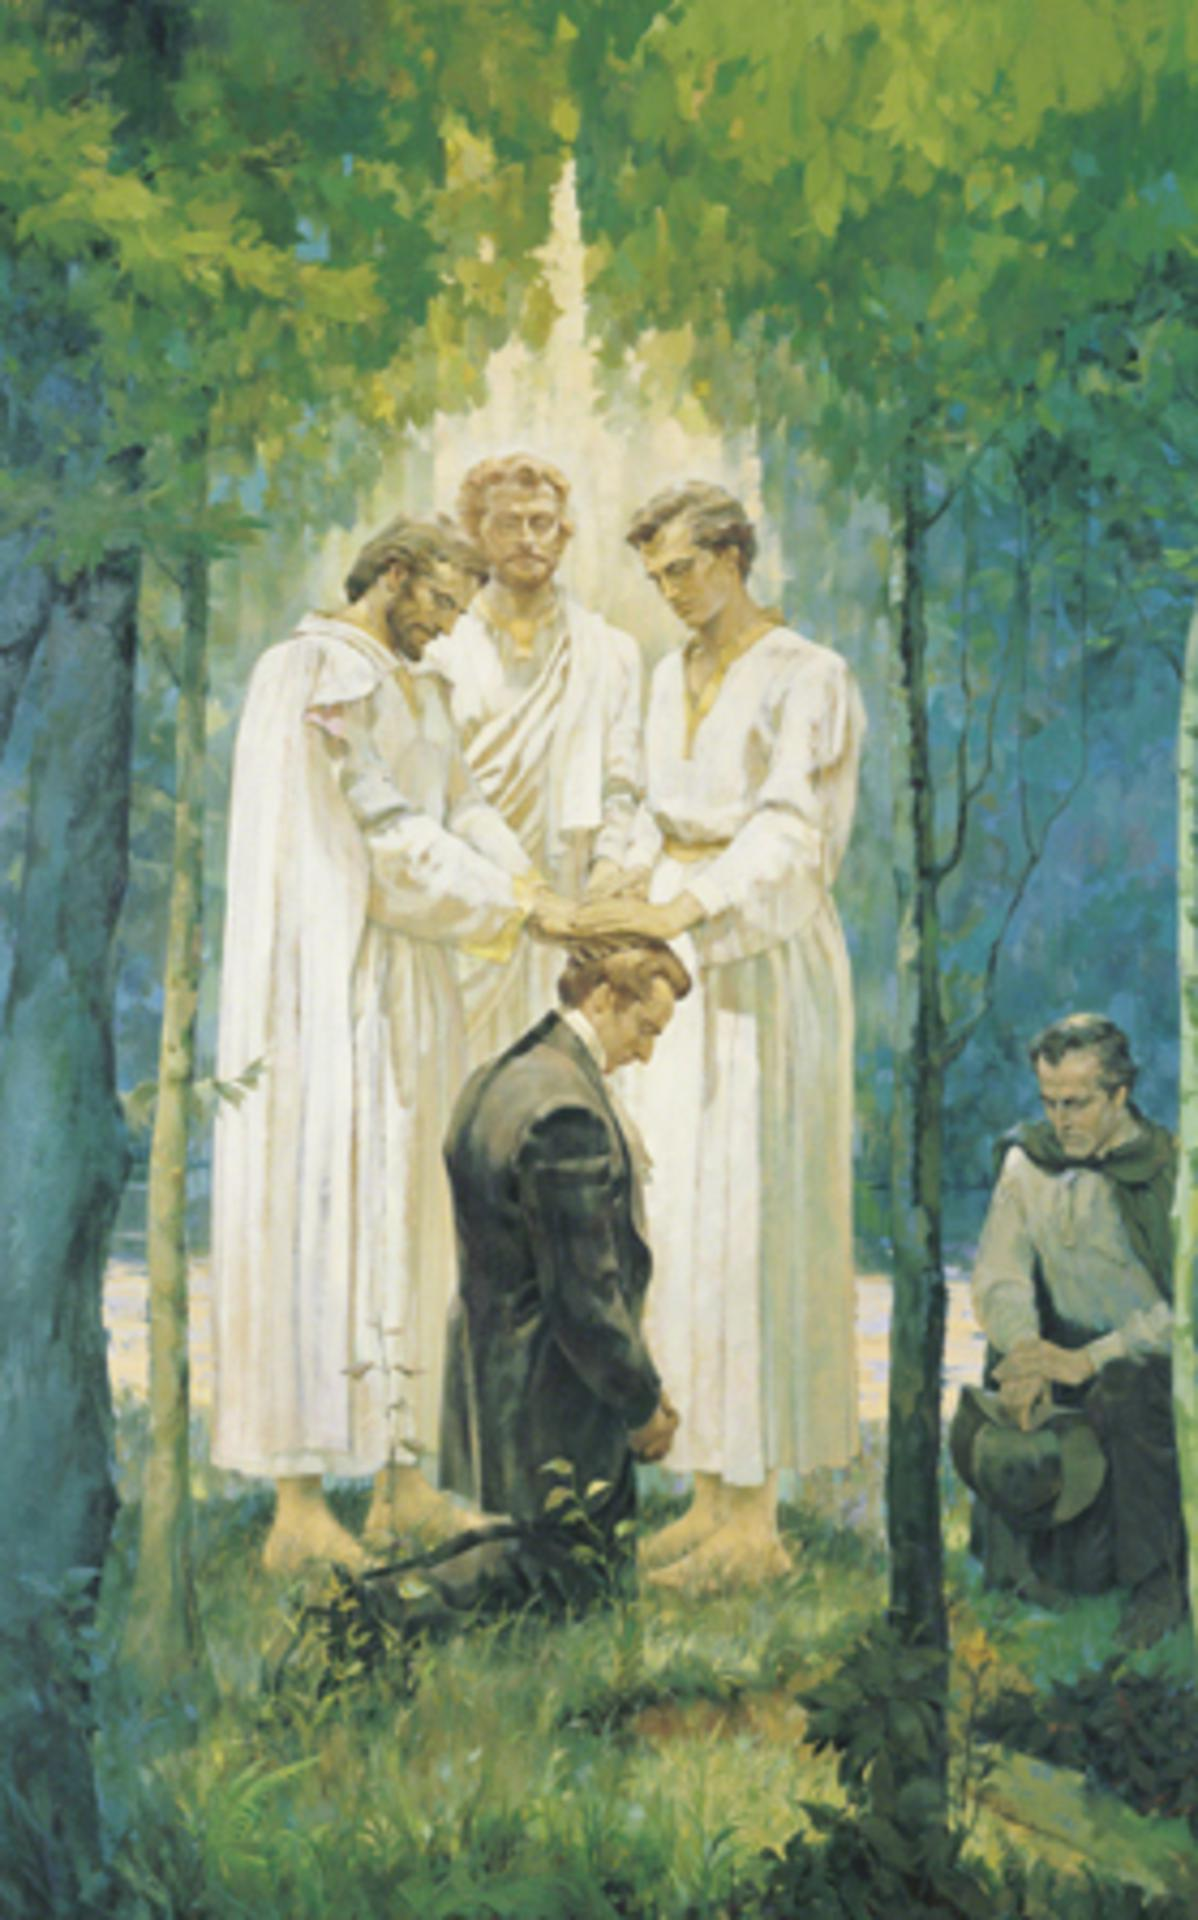 Melchizedek priesthood given to Joseph Smith